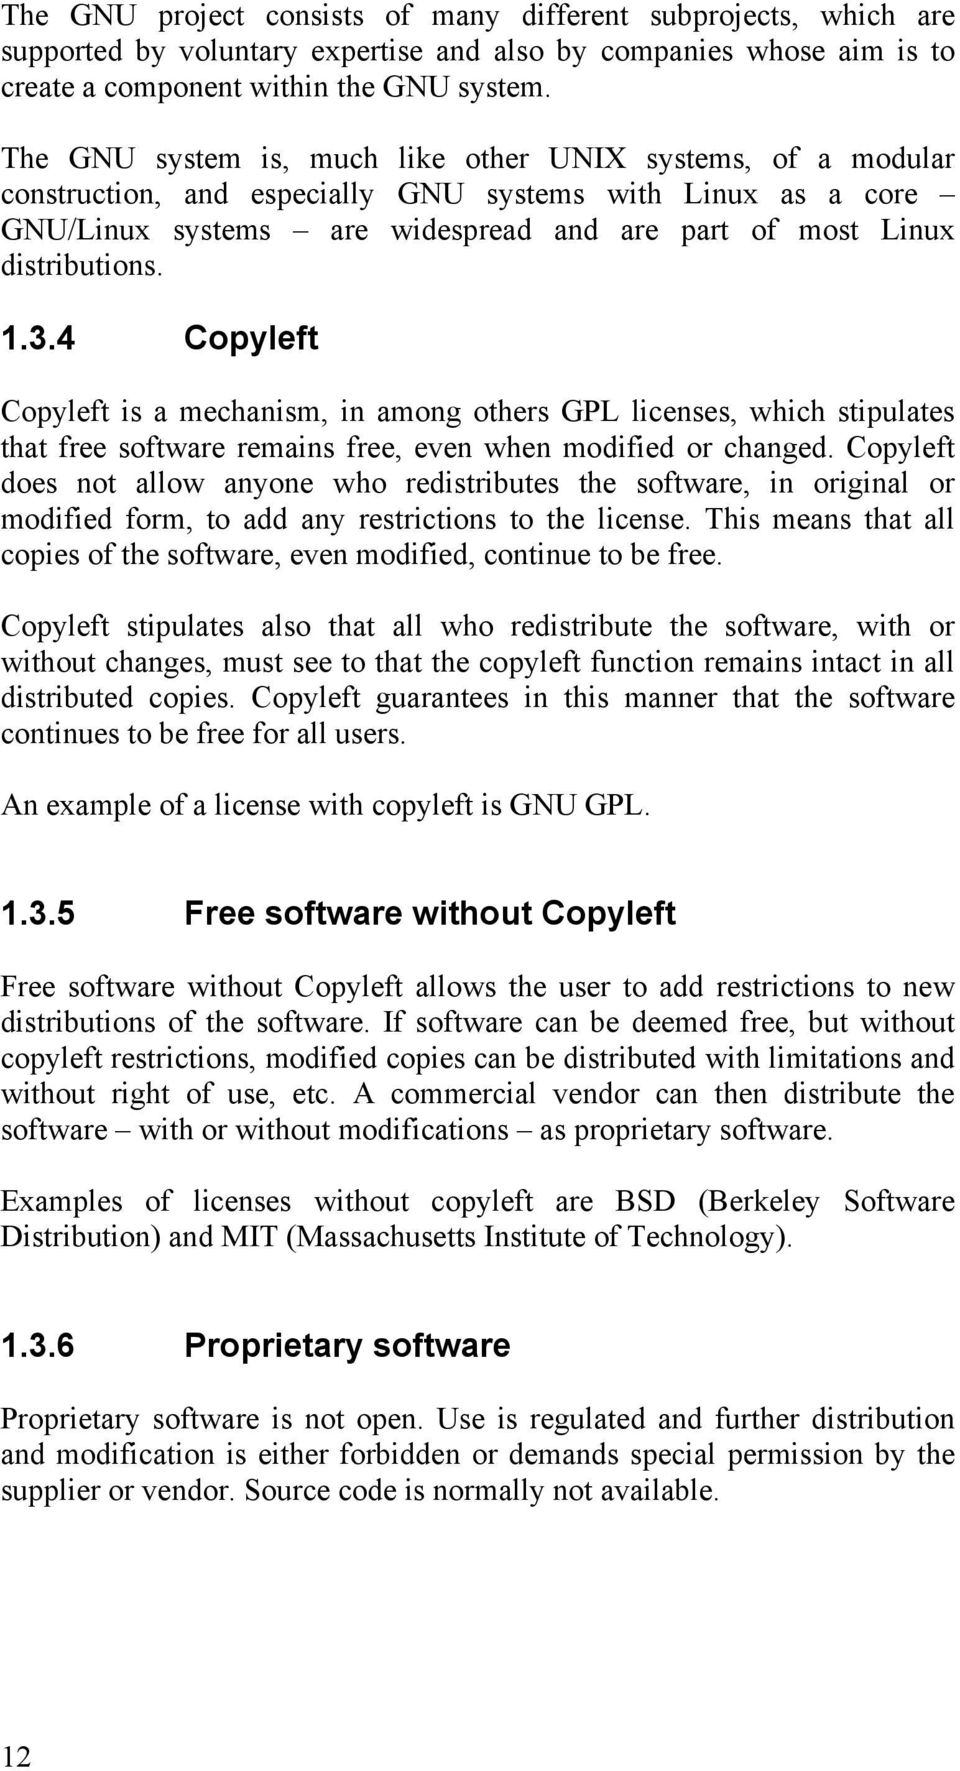 1.3.4 Copyleft Copyleft is a mechanism, in among others GPL licenses, which stipulates that free software remains free, even when modified or changed.